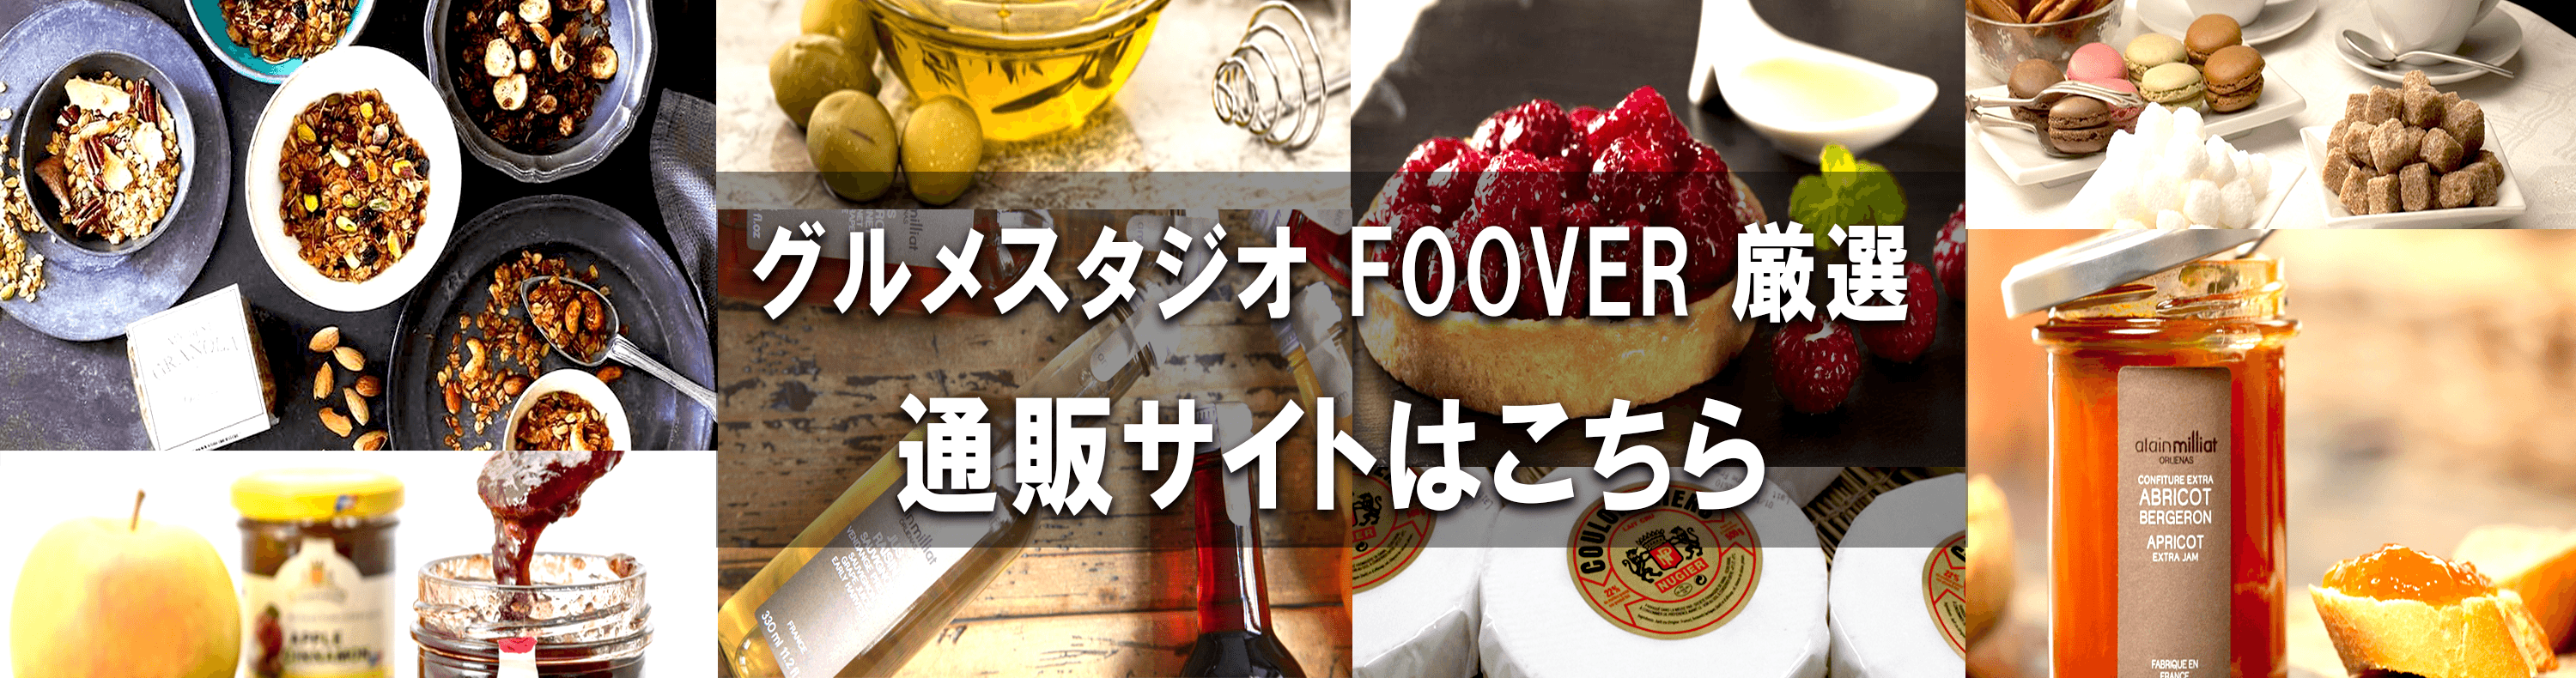 FOOVER 通販サイト